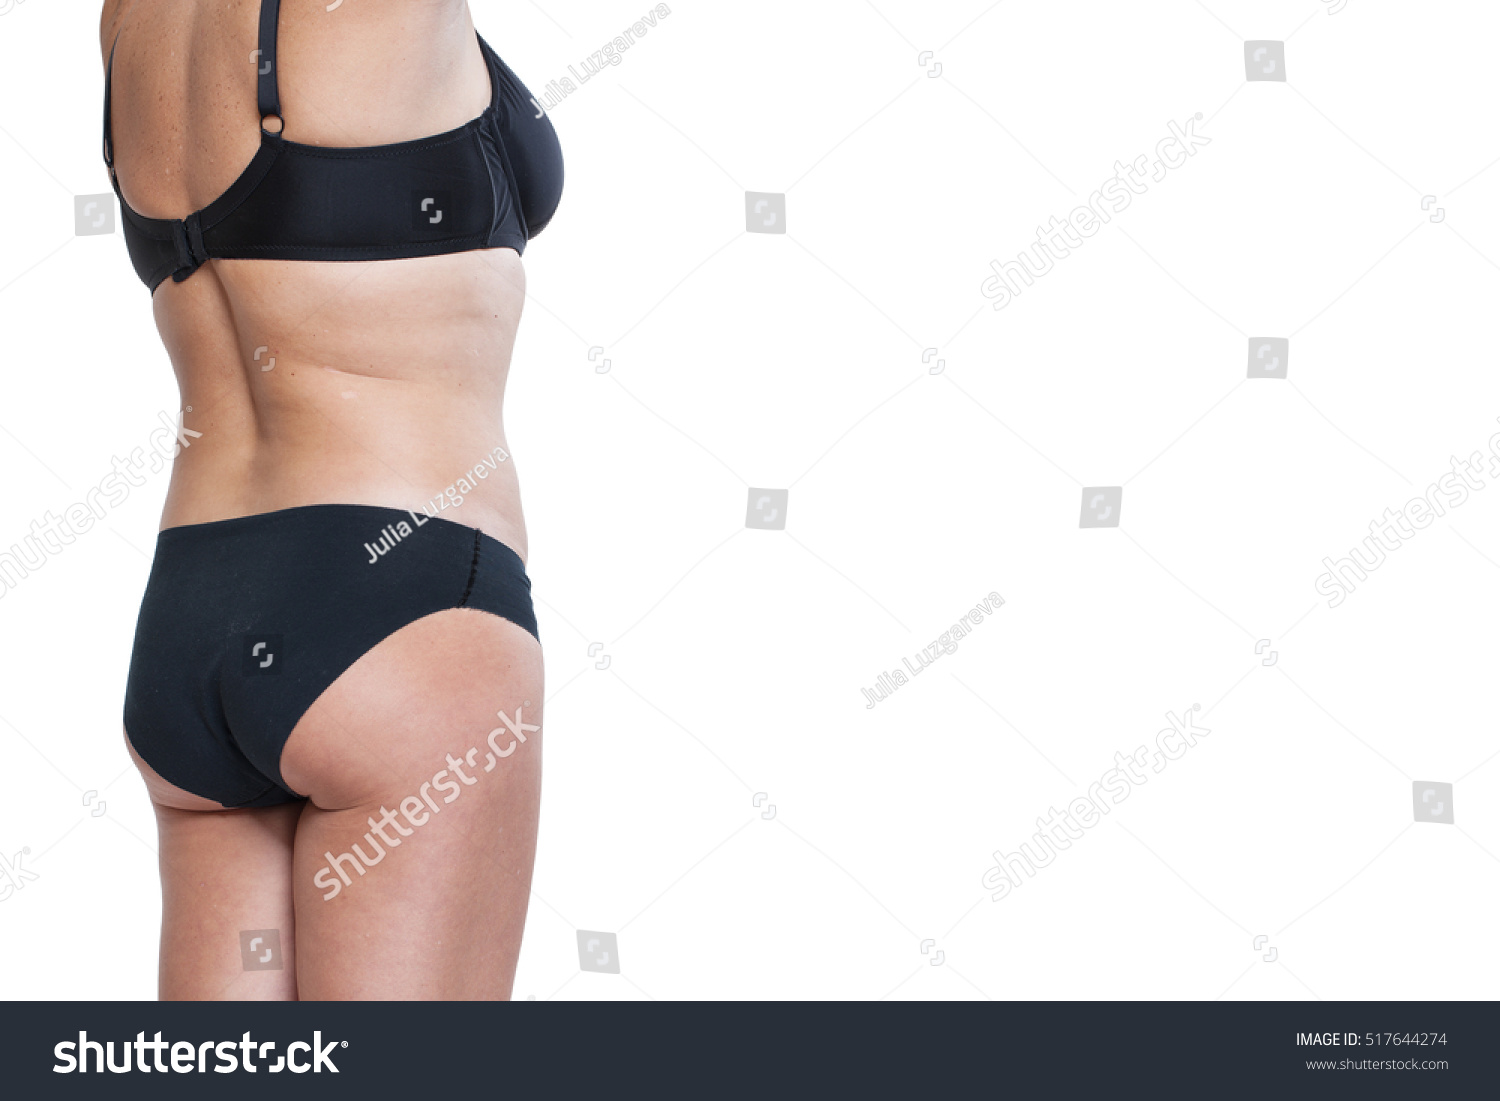 66a8eaf4a9993 Fat Woman Underwear Back BODY Women Stock Photo (Edit Now) 517644274 ...